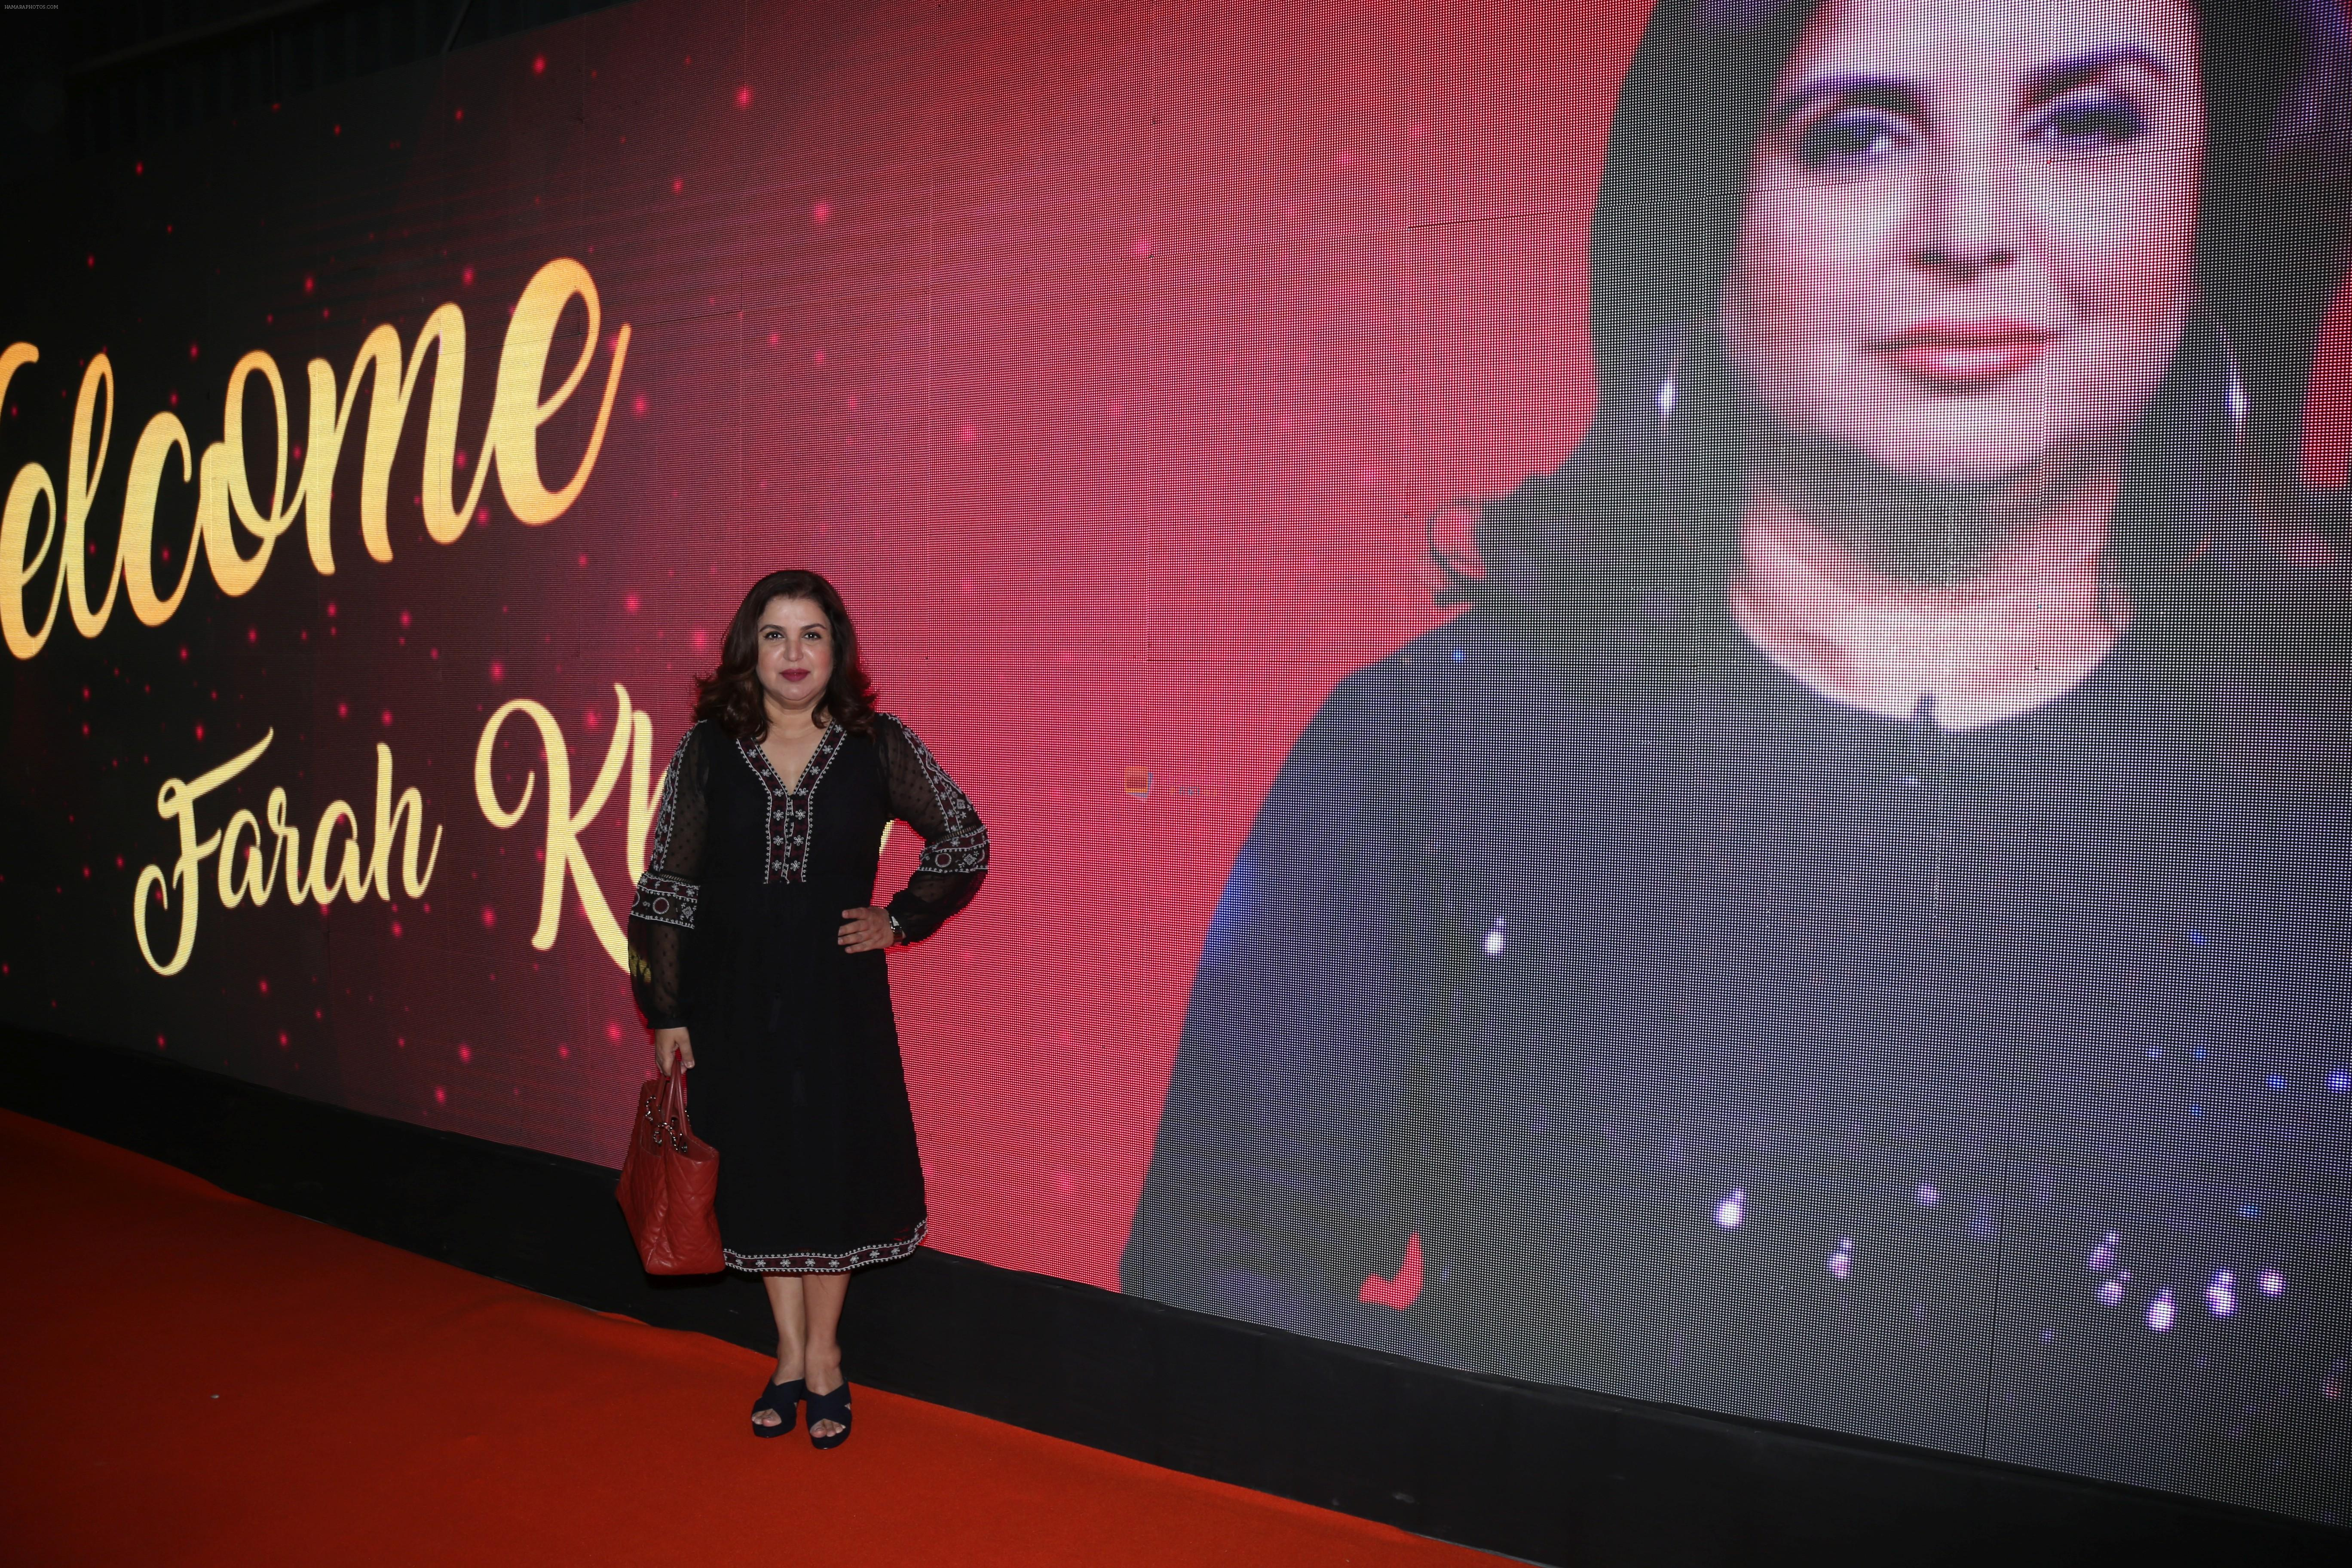 Farah Khan at the Big Cine Expo in goregaon on 26th AUg 2019